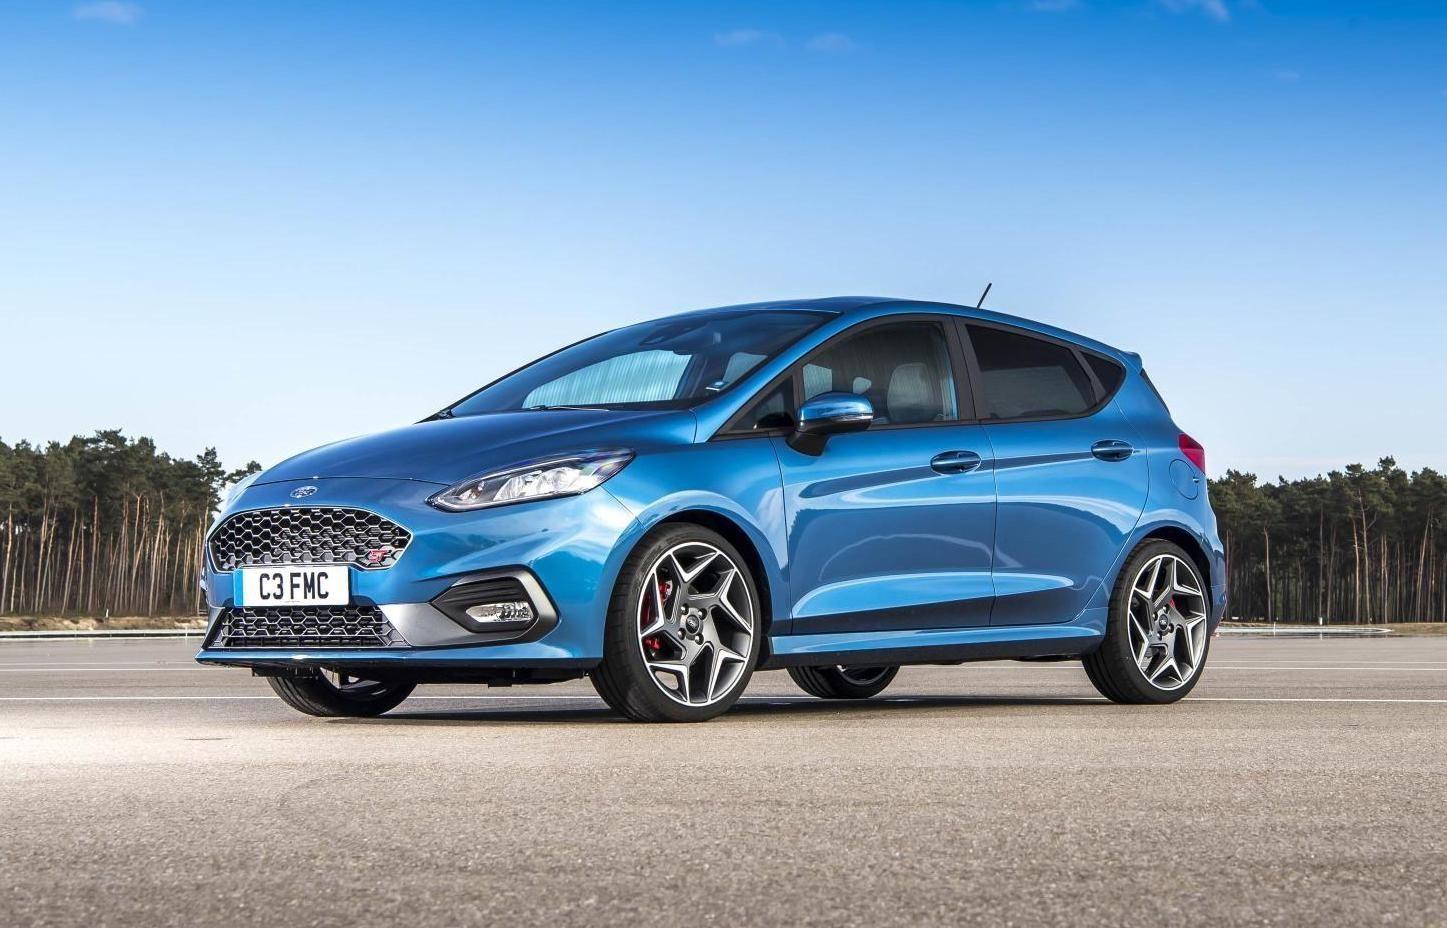 2019 Ford Fiesta First Drive 2019 Ford Ford Fiesta St Ford